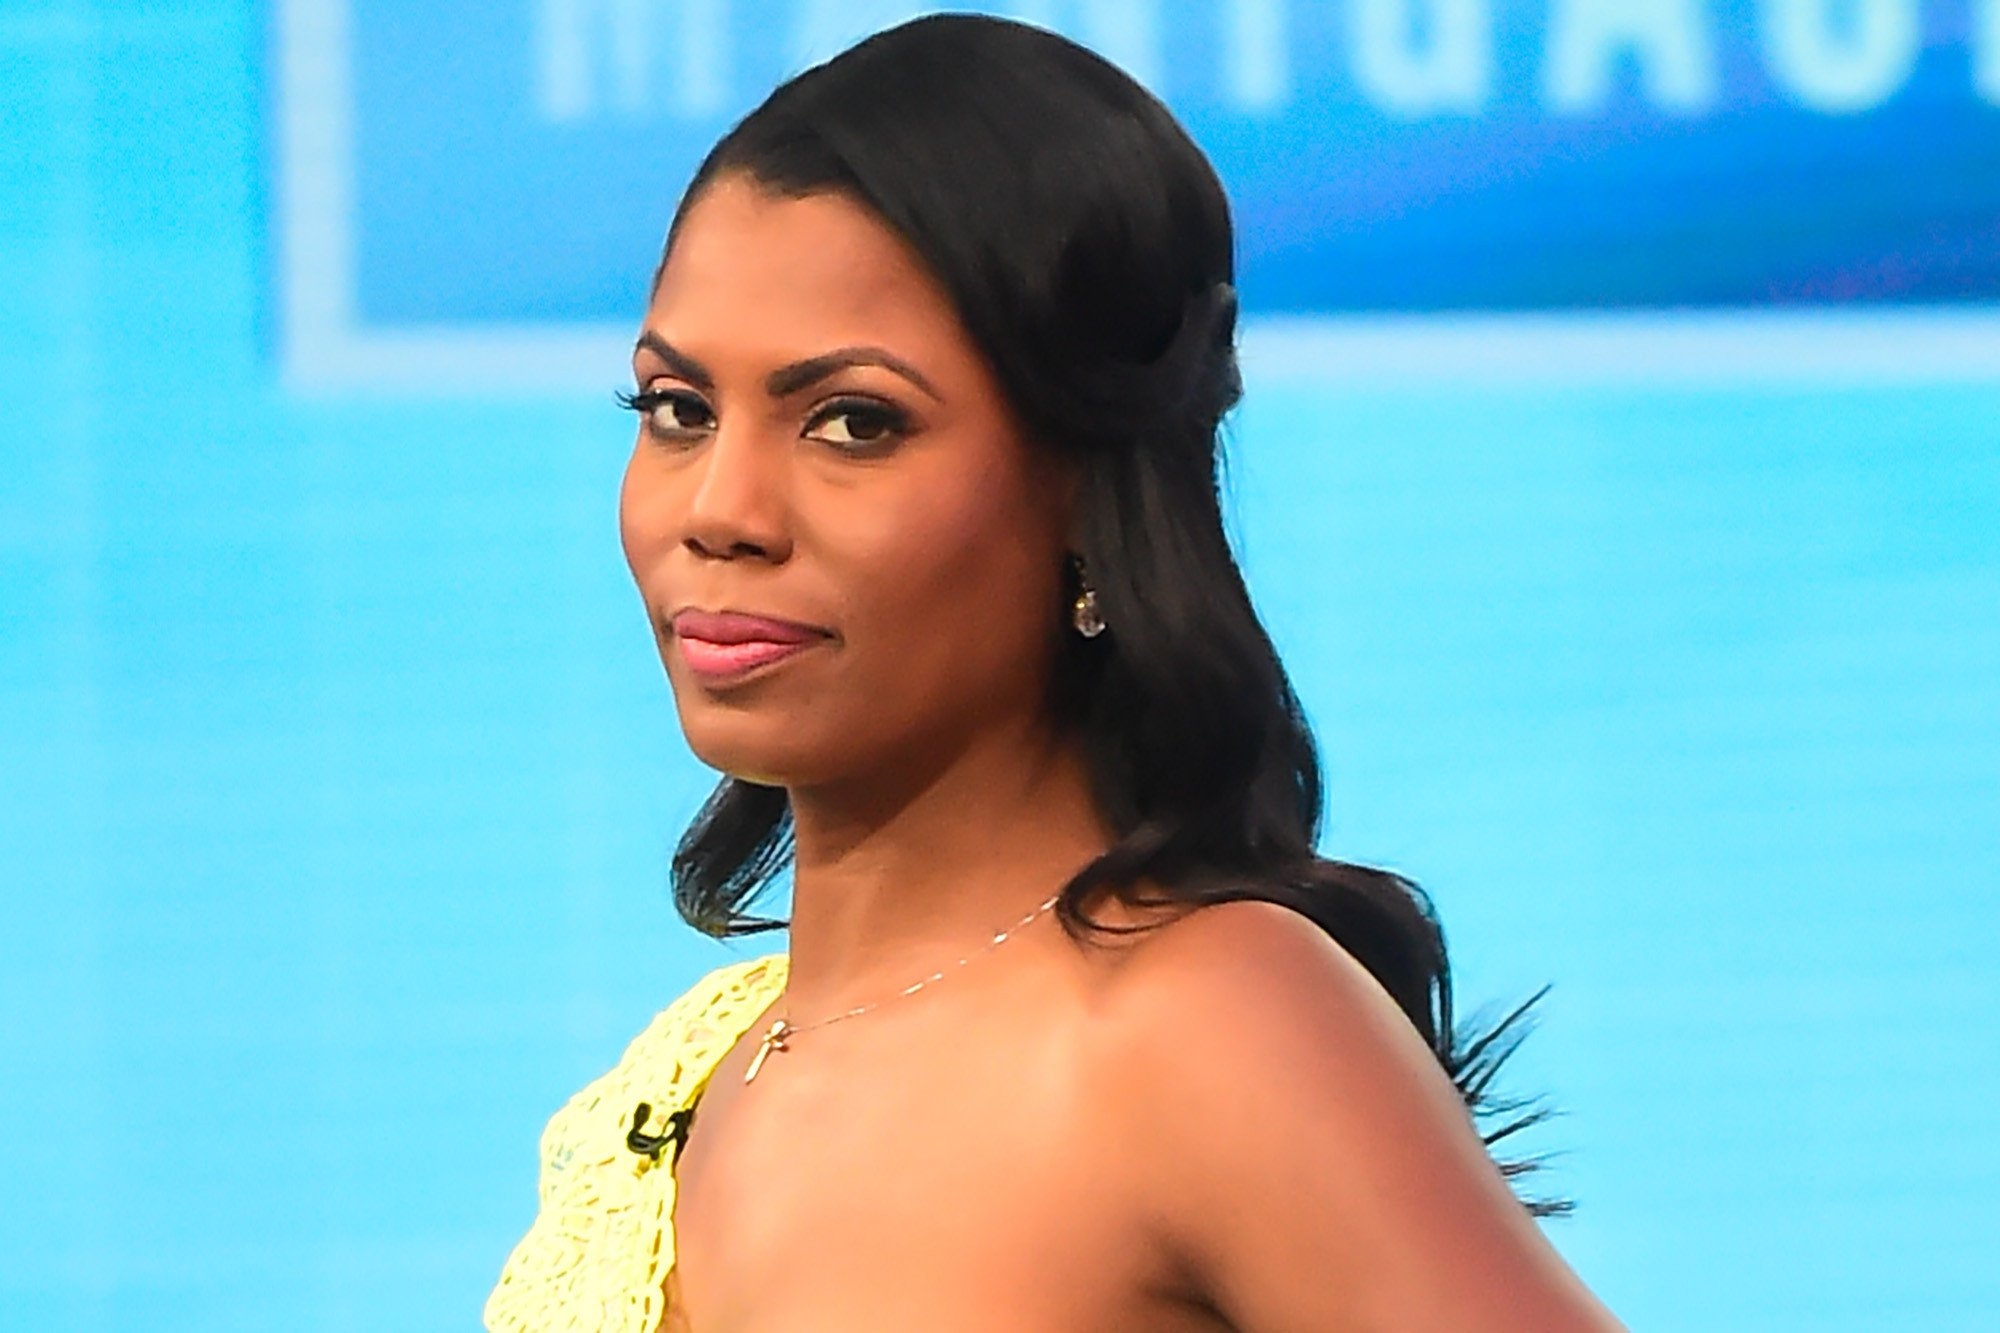 Omarosa claims audio reveals Trump staffers discussing N-word tape